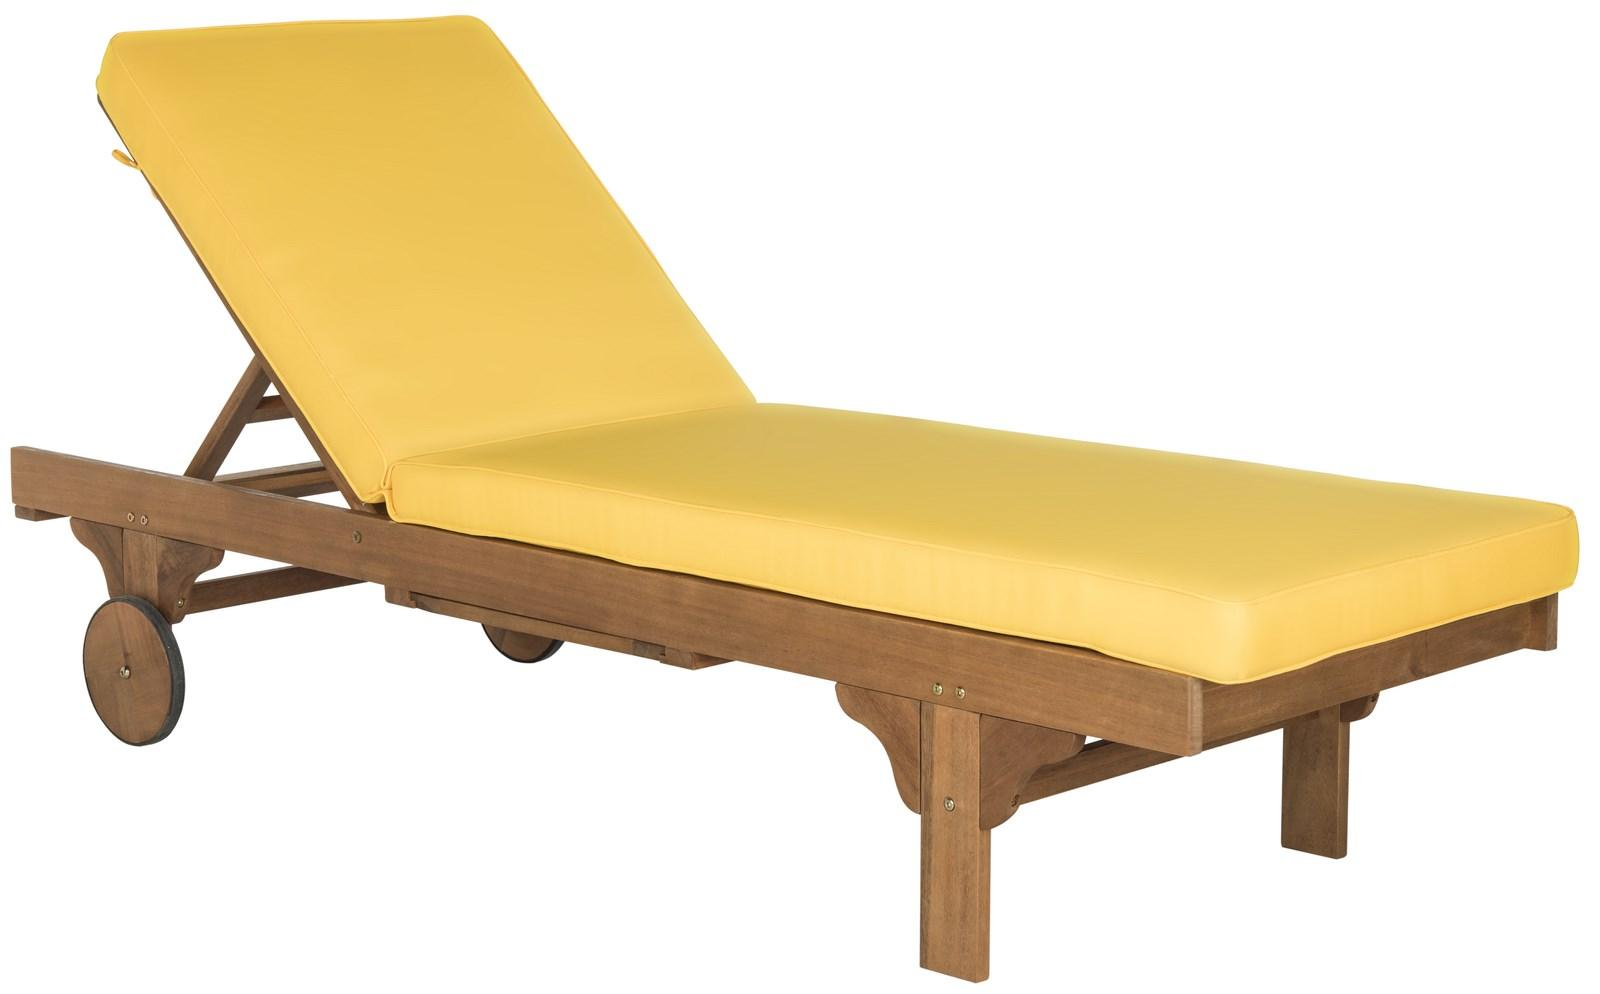 outdoor chaise lounge chairs with wheels chair and 1 2 slipcovers furnishings safavieh com share this product